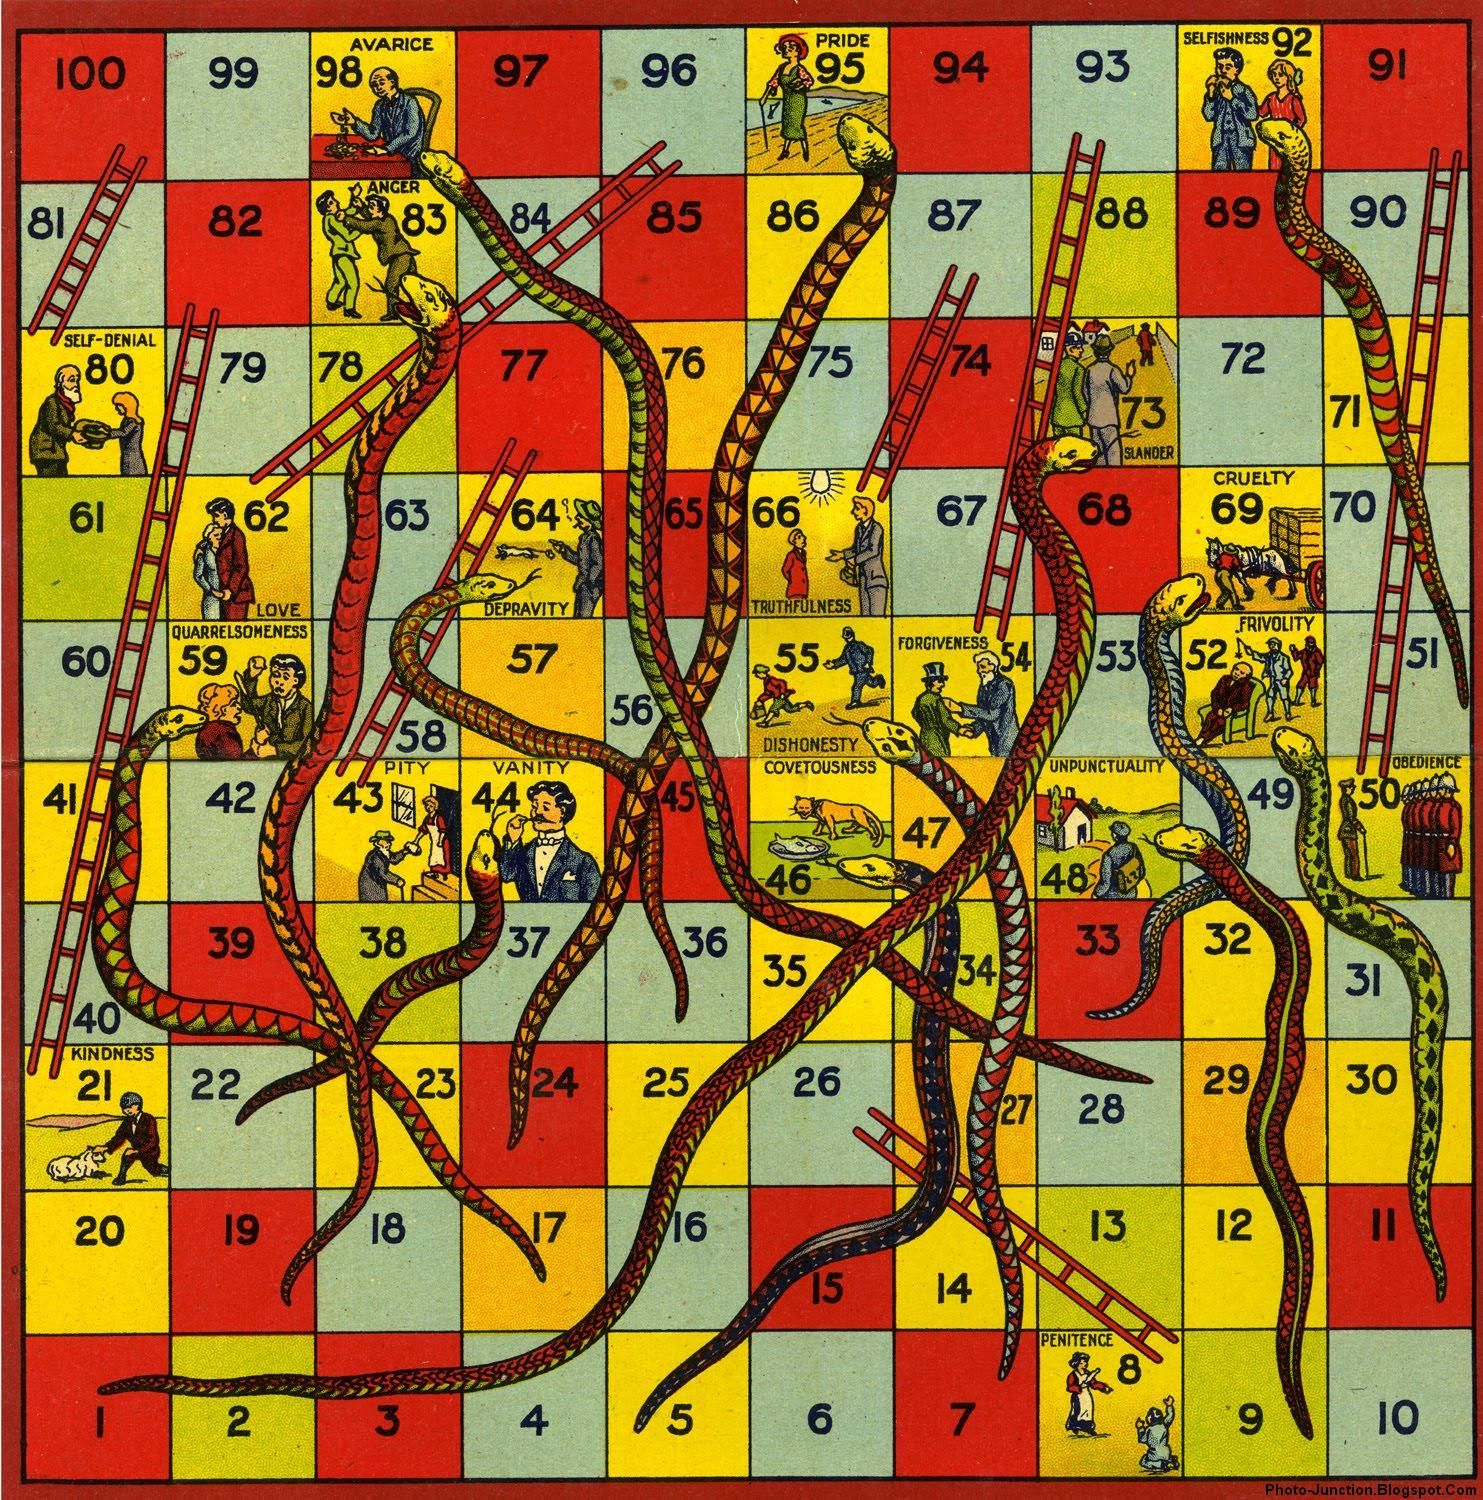 Pictures images snakes and ladders board game template wallpaper - Vintage Snakes And Ladders Board Game This Is The One I Played With